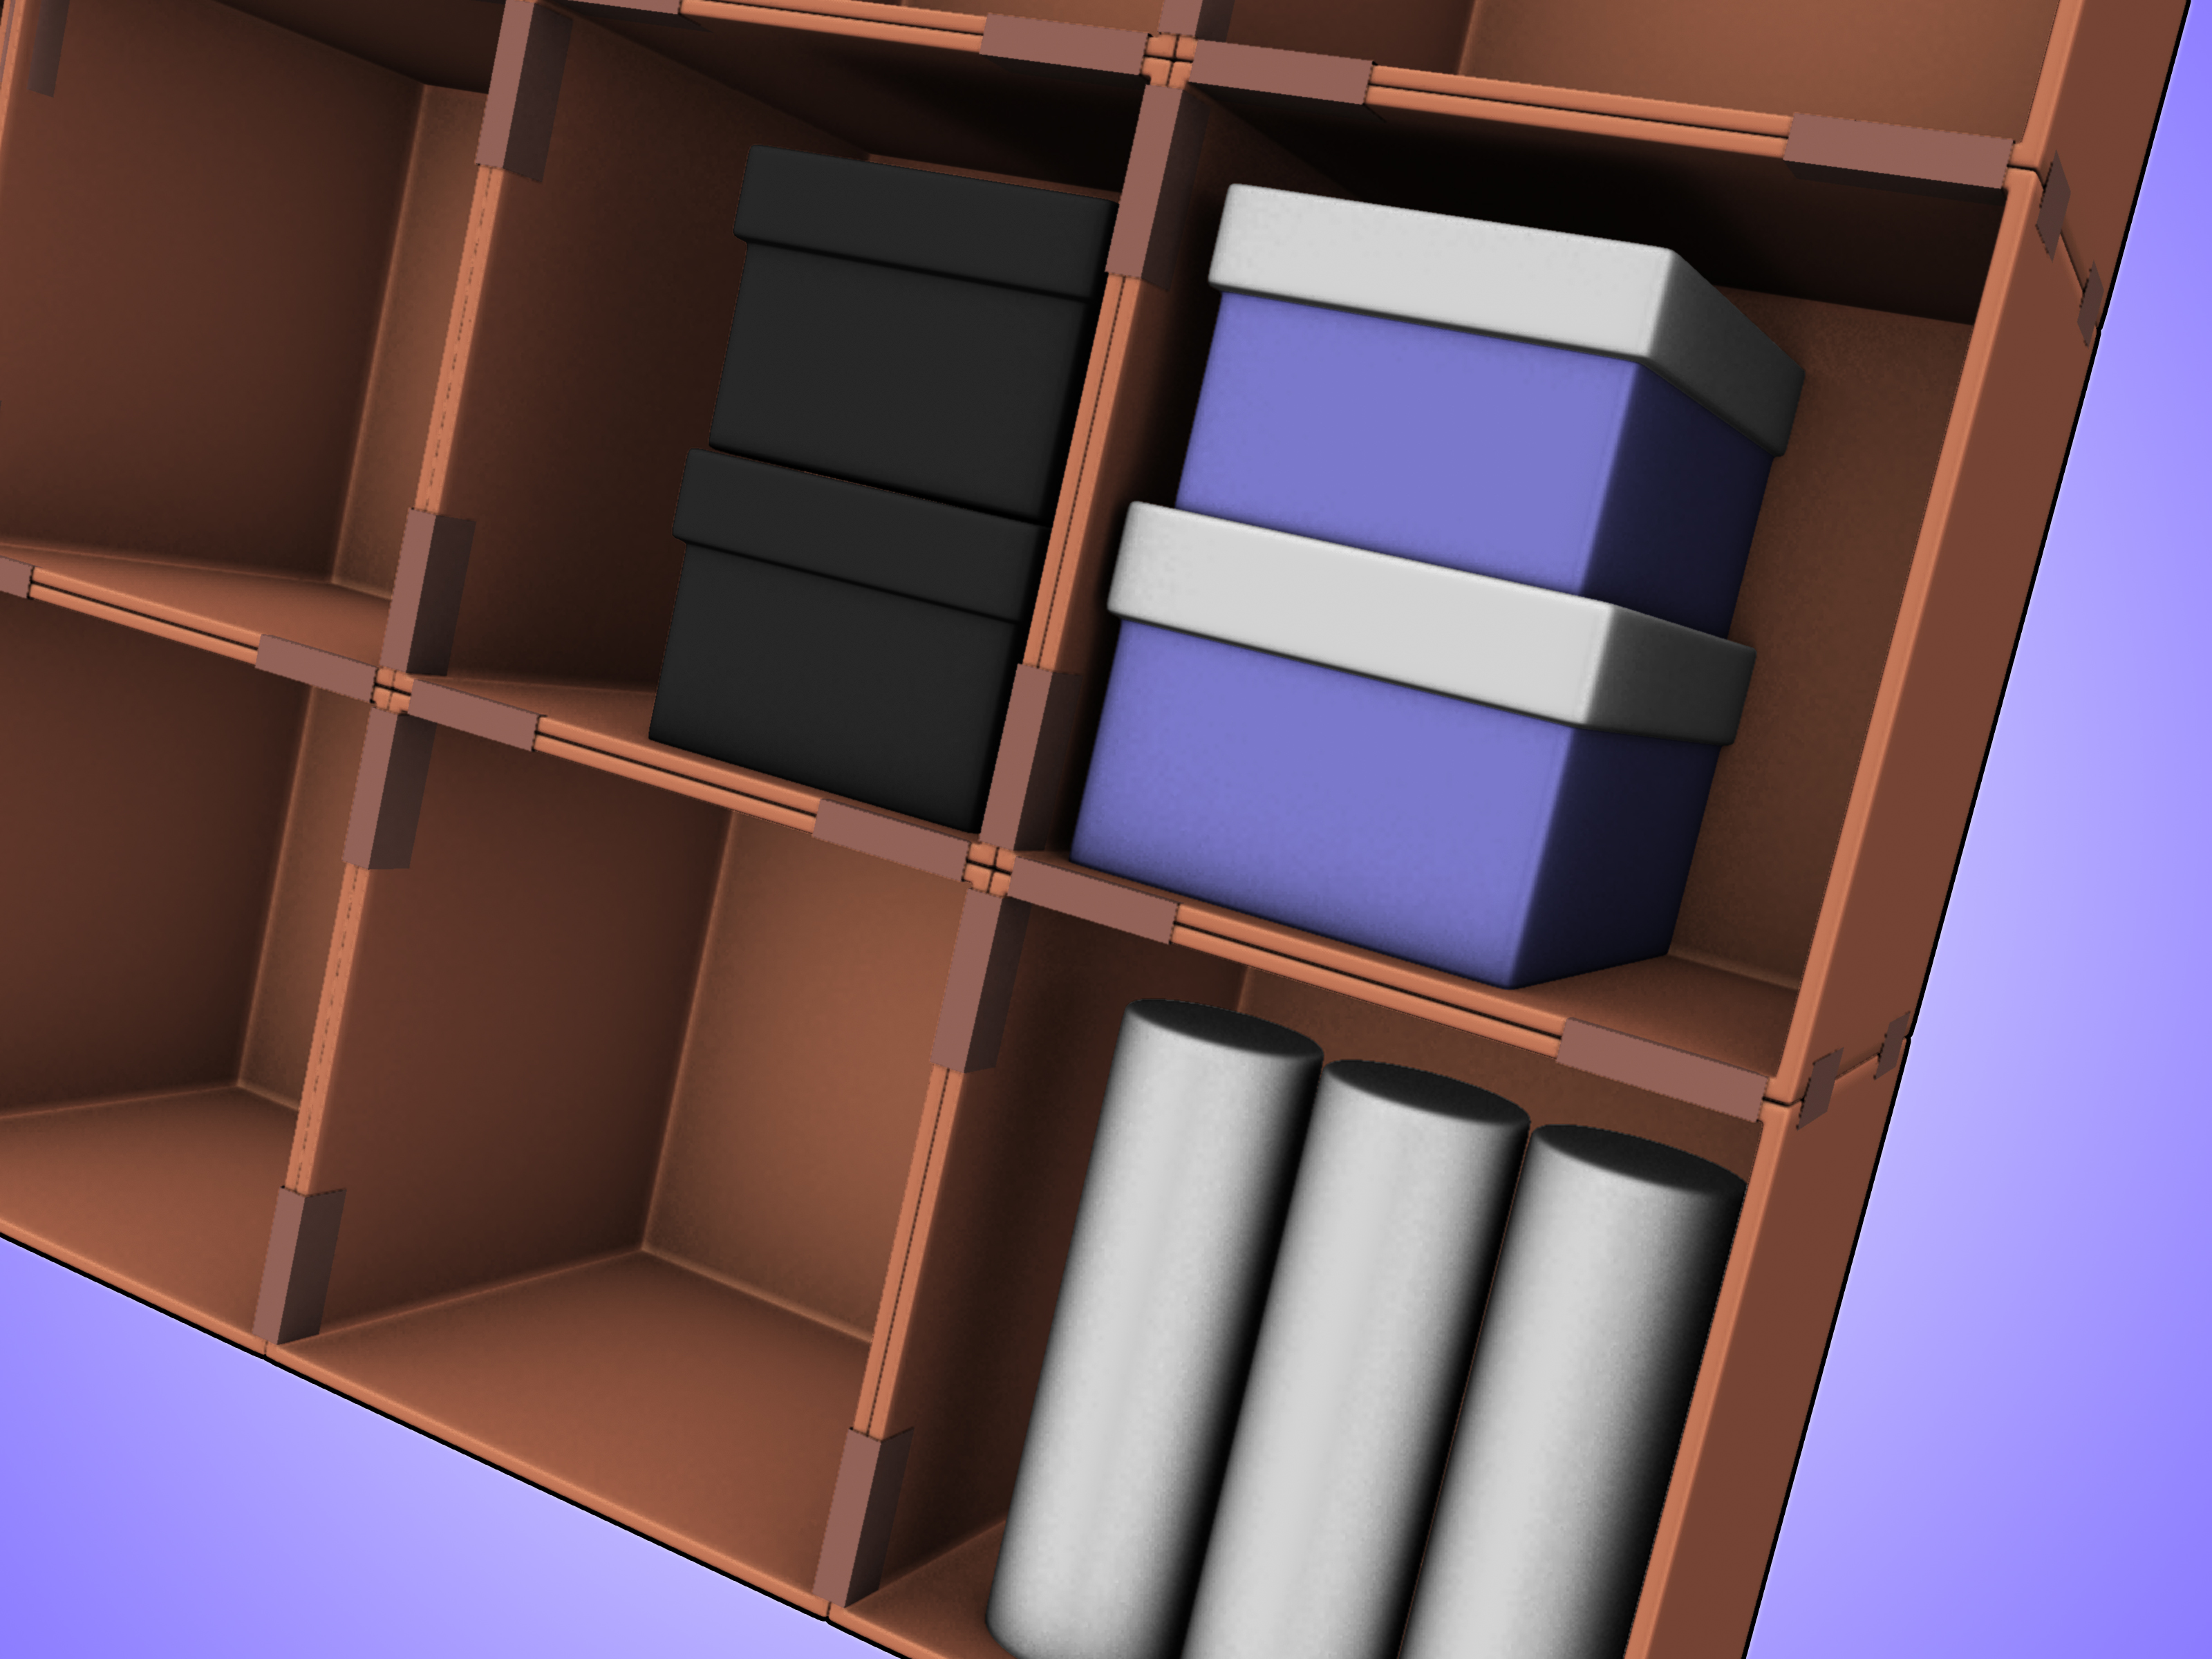 Cardboard Box Dividers How To Make A Cardboard Box Storage System 4 Steps